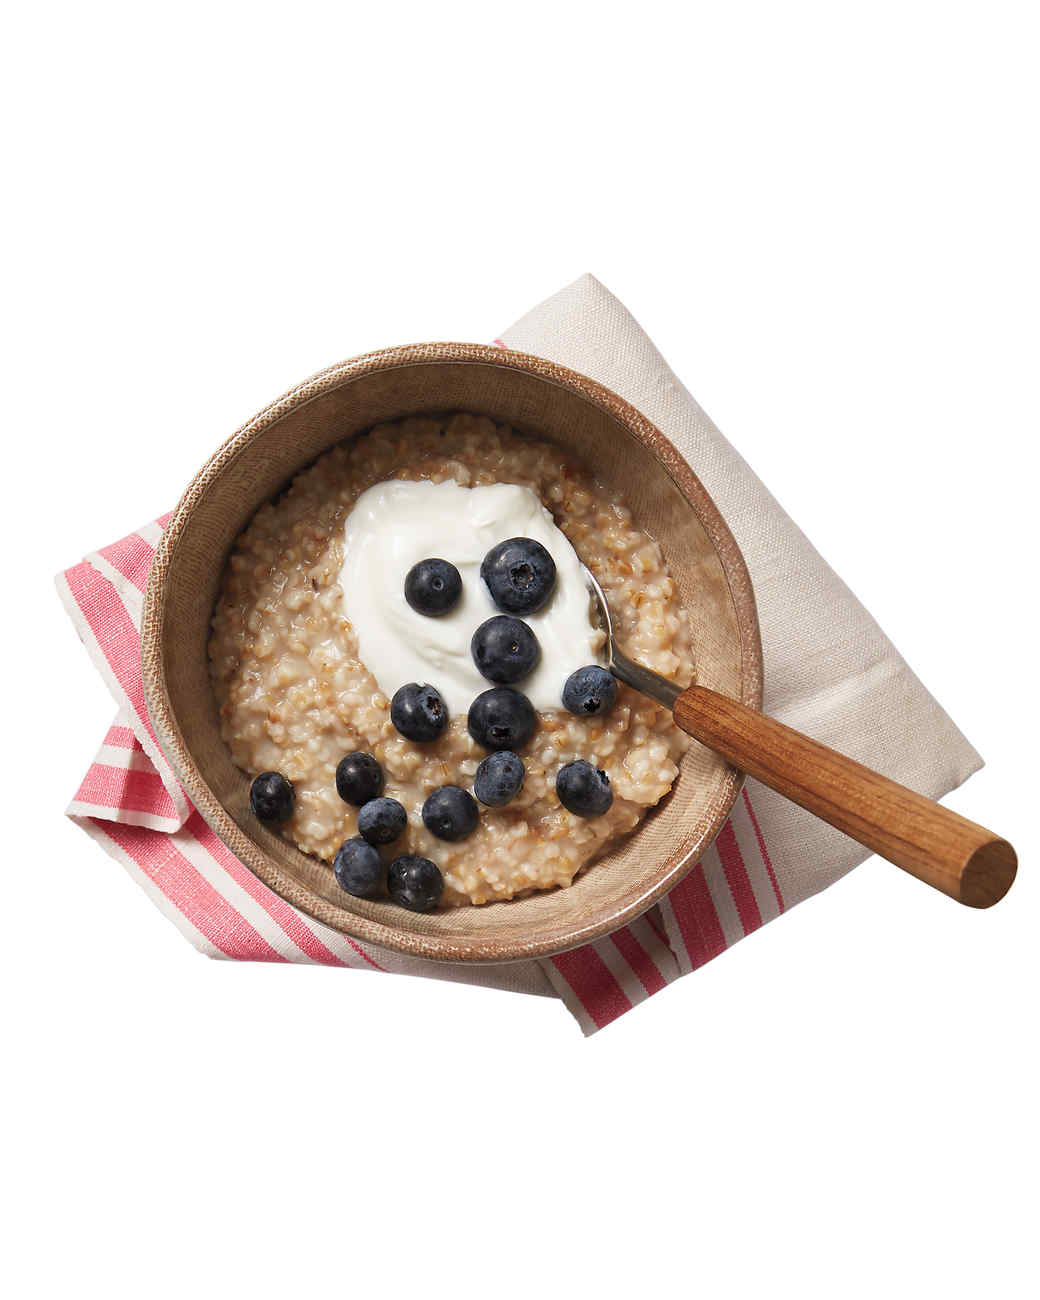 steel-cut-oats-086-d111565.jpg